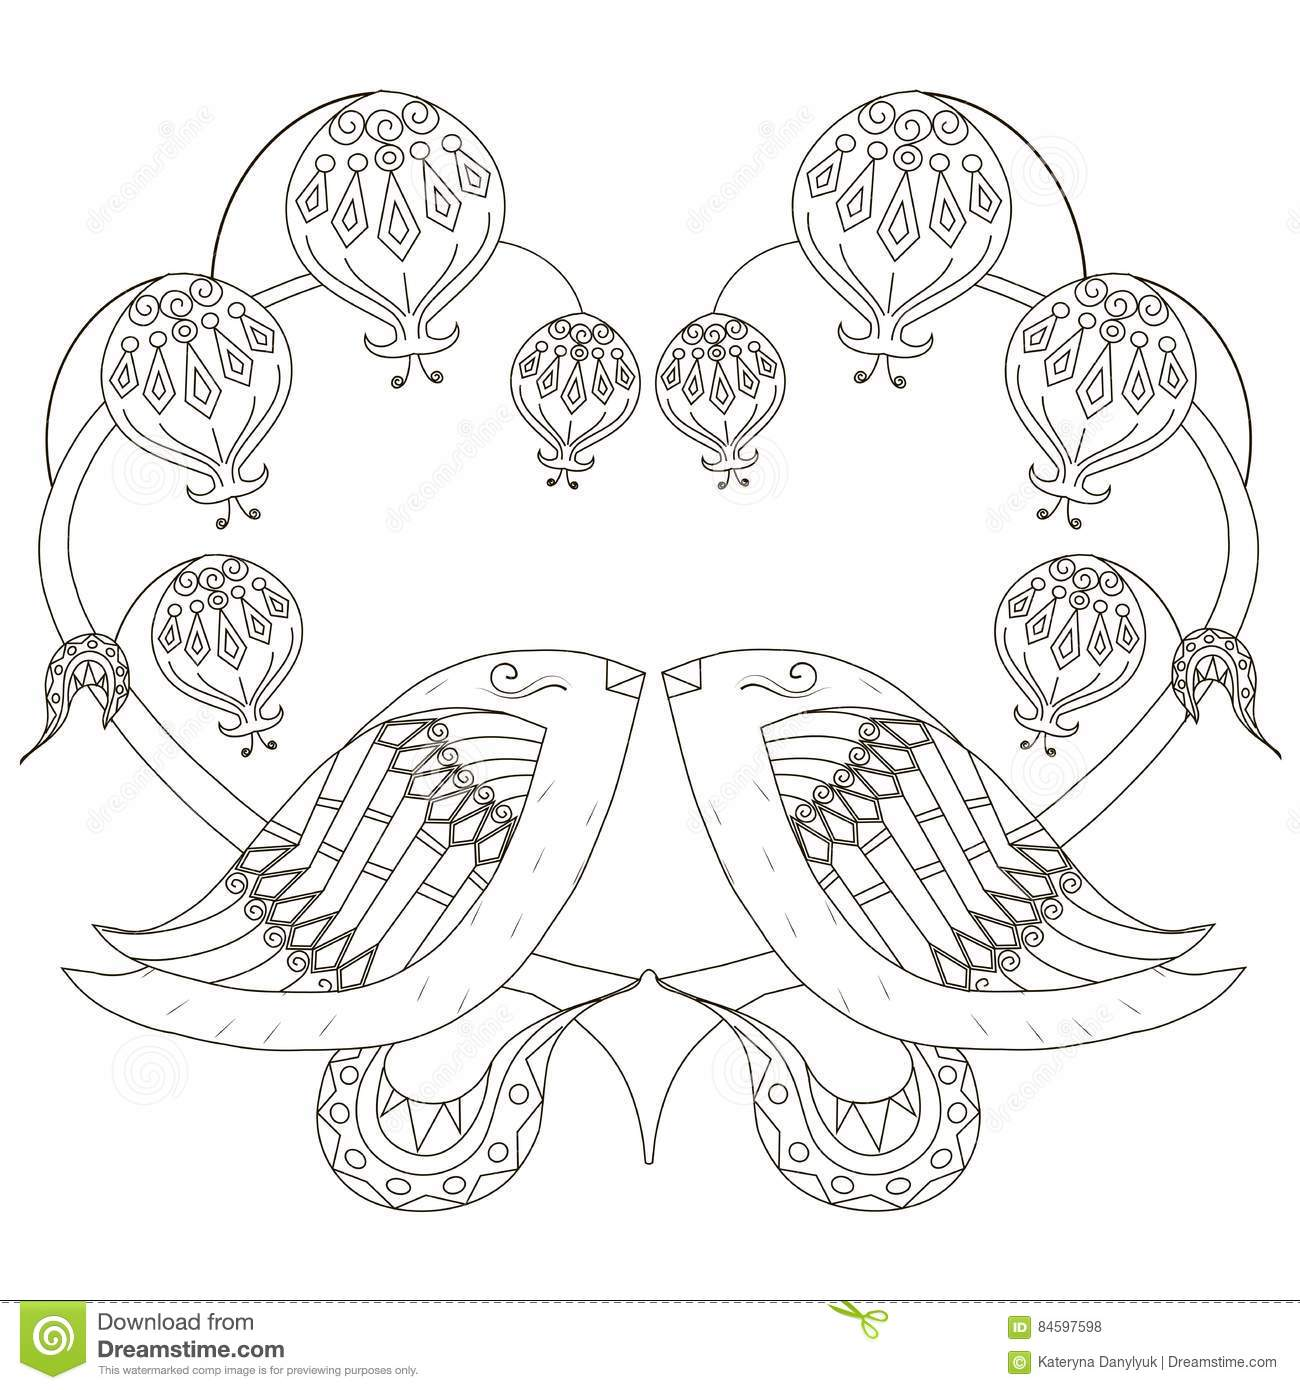 Black And White Sketch Of Loving Birds, Stylized Heart